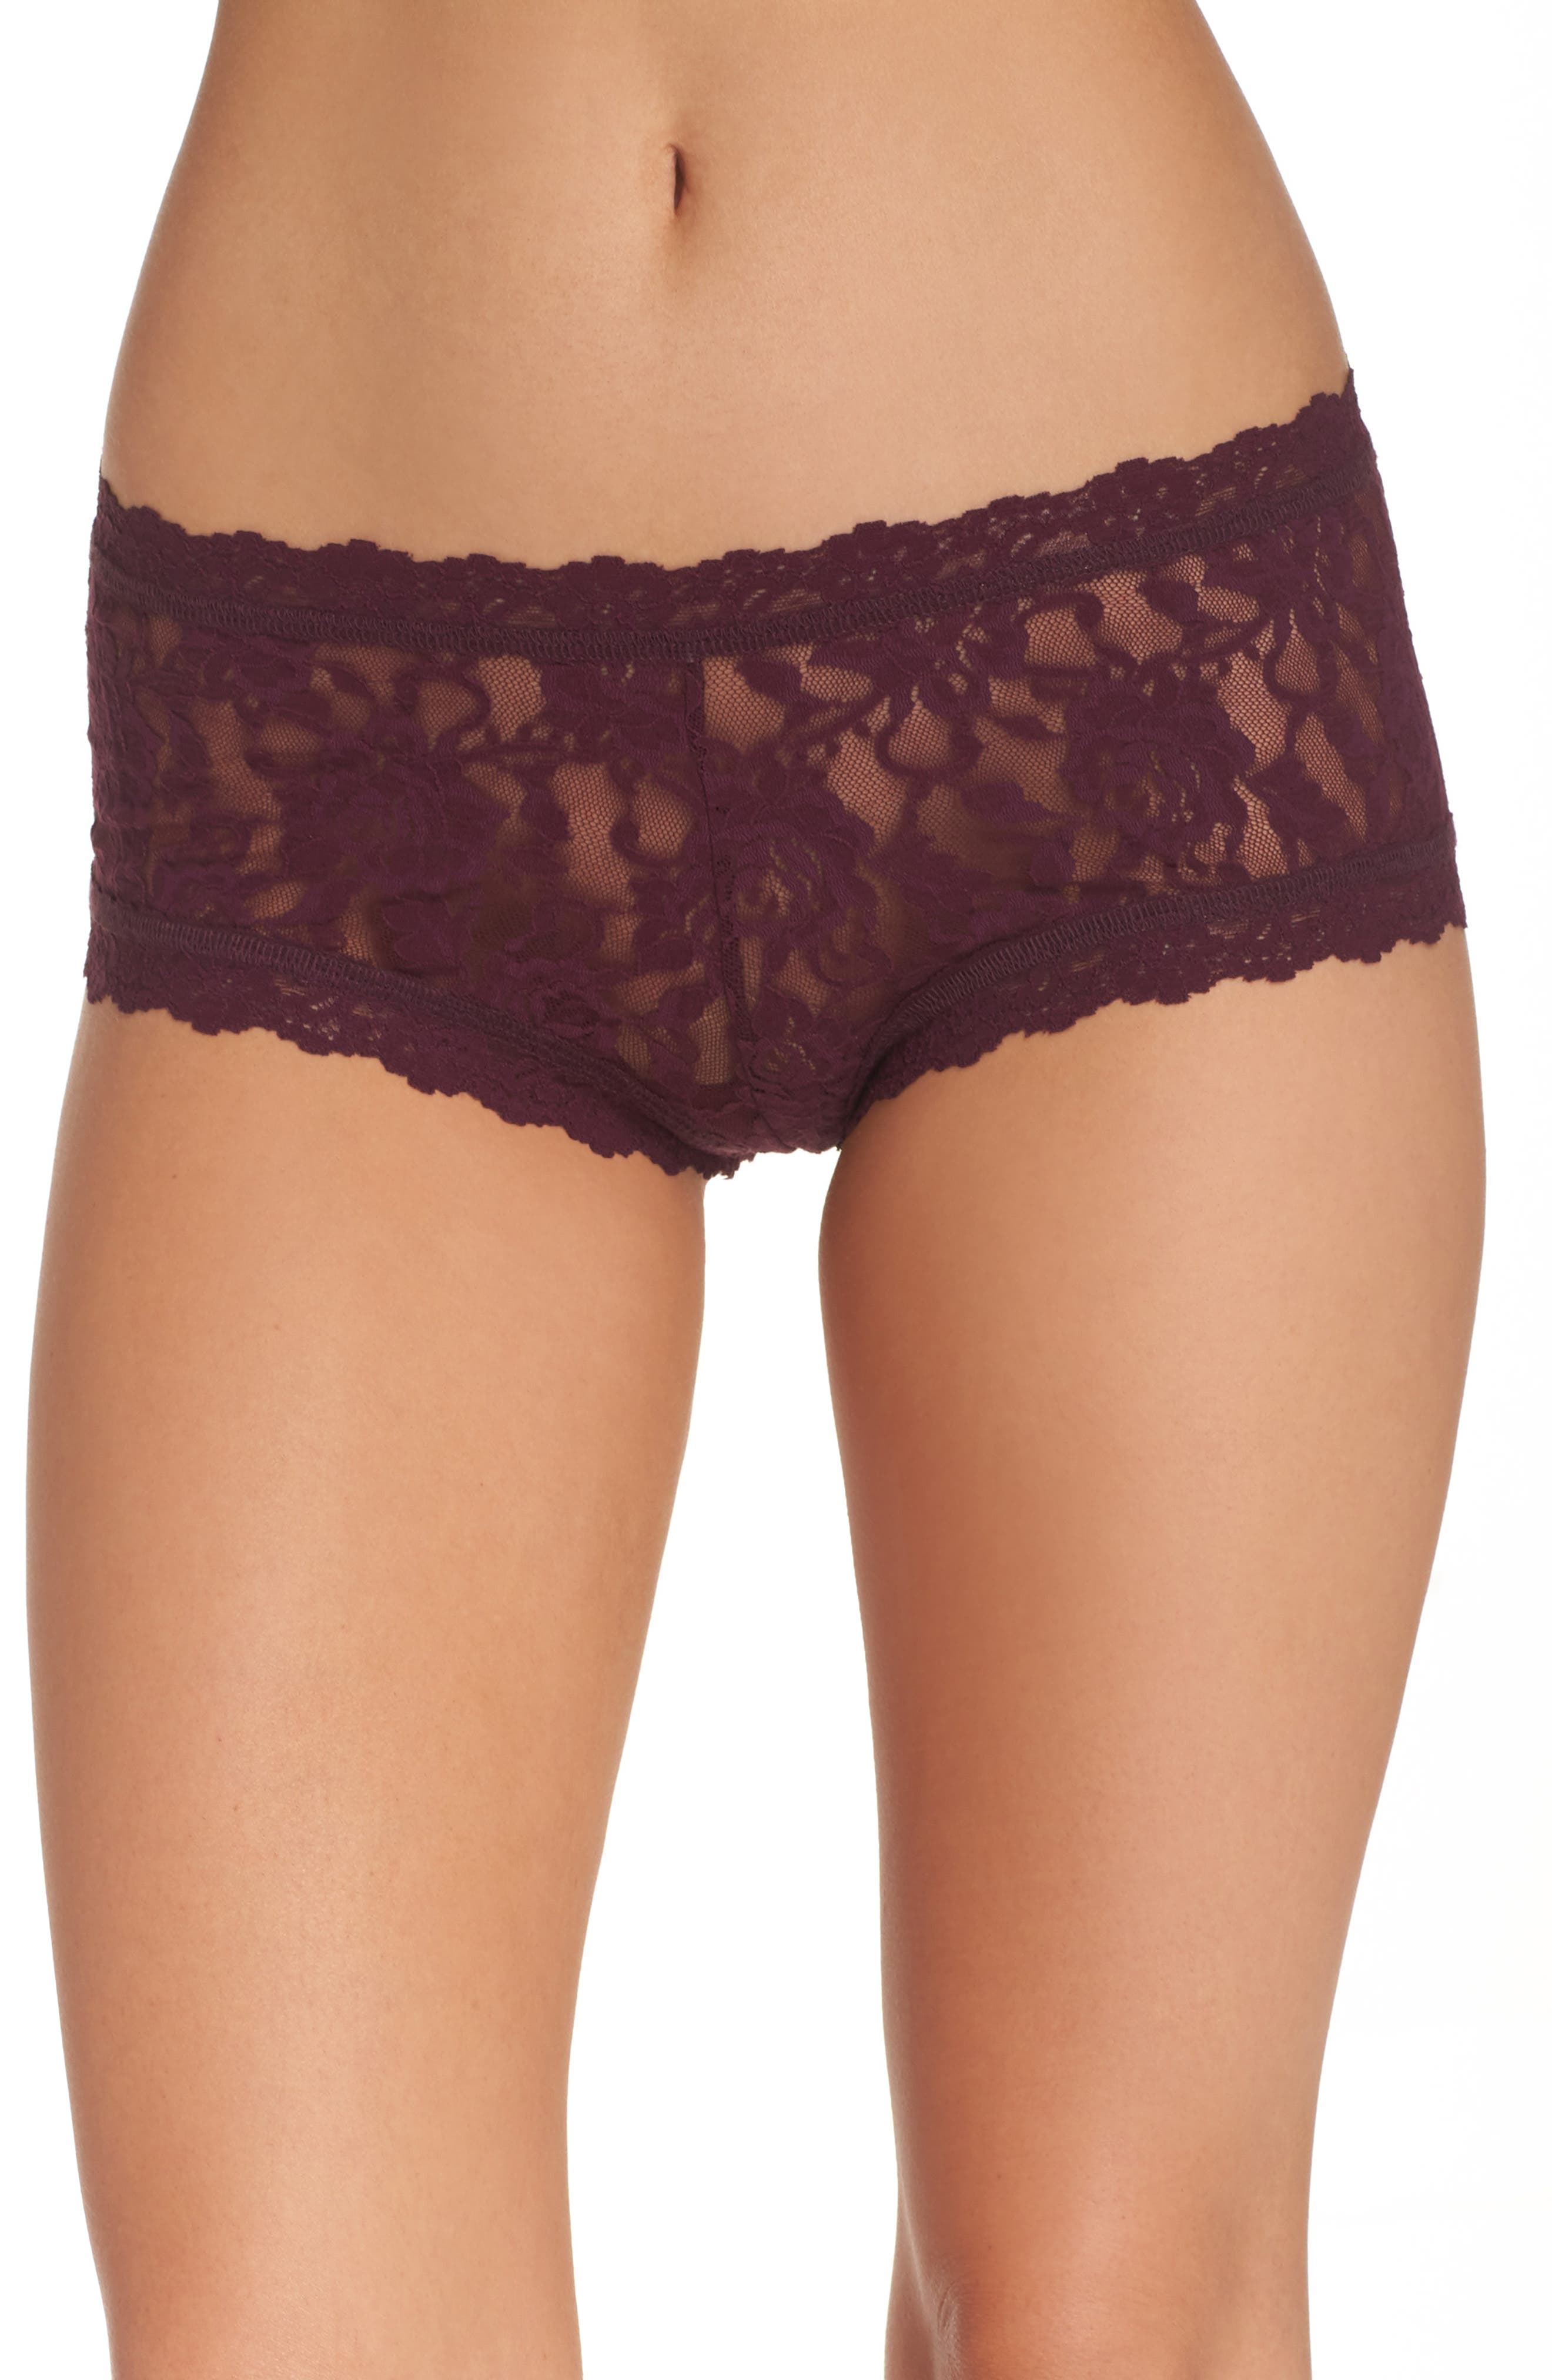 Alternate Image 1 Selected - Hanky Panky 'Signature Lace' Boyshorts